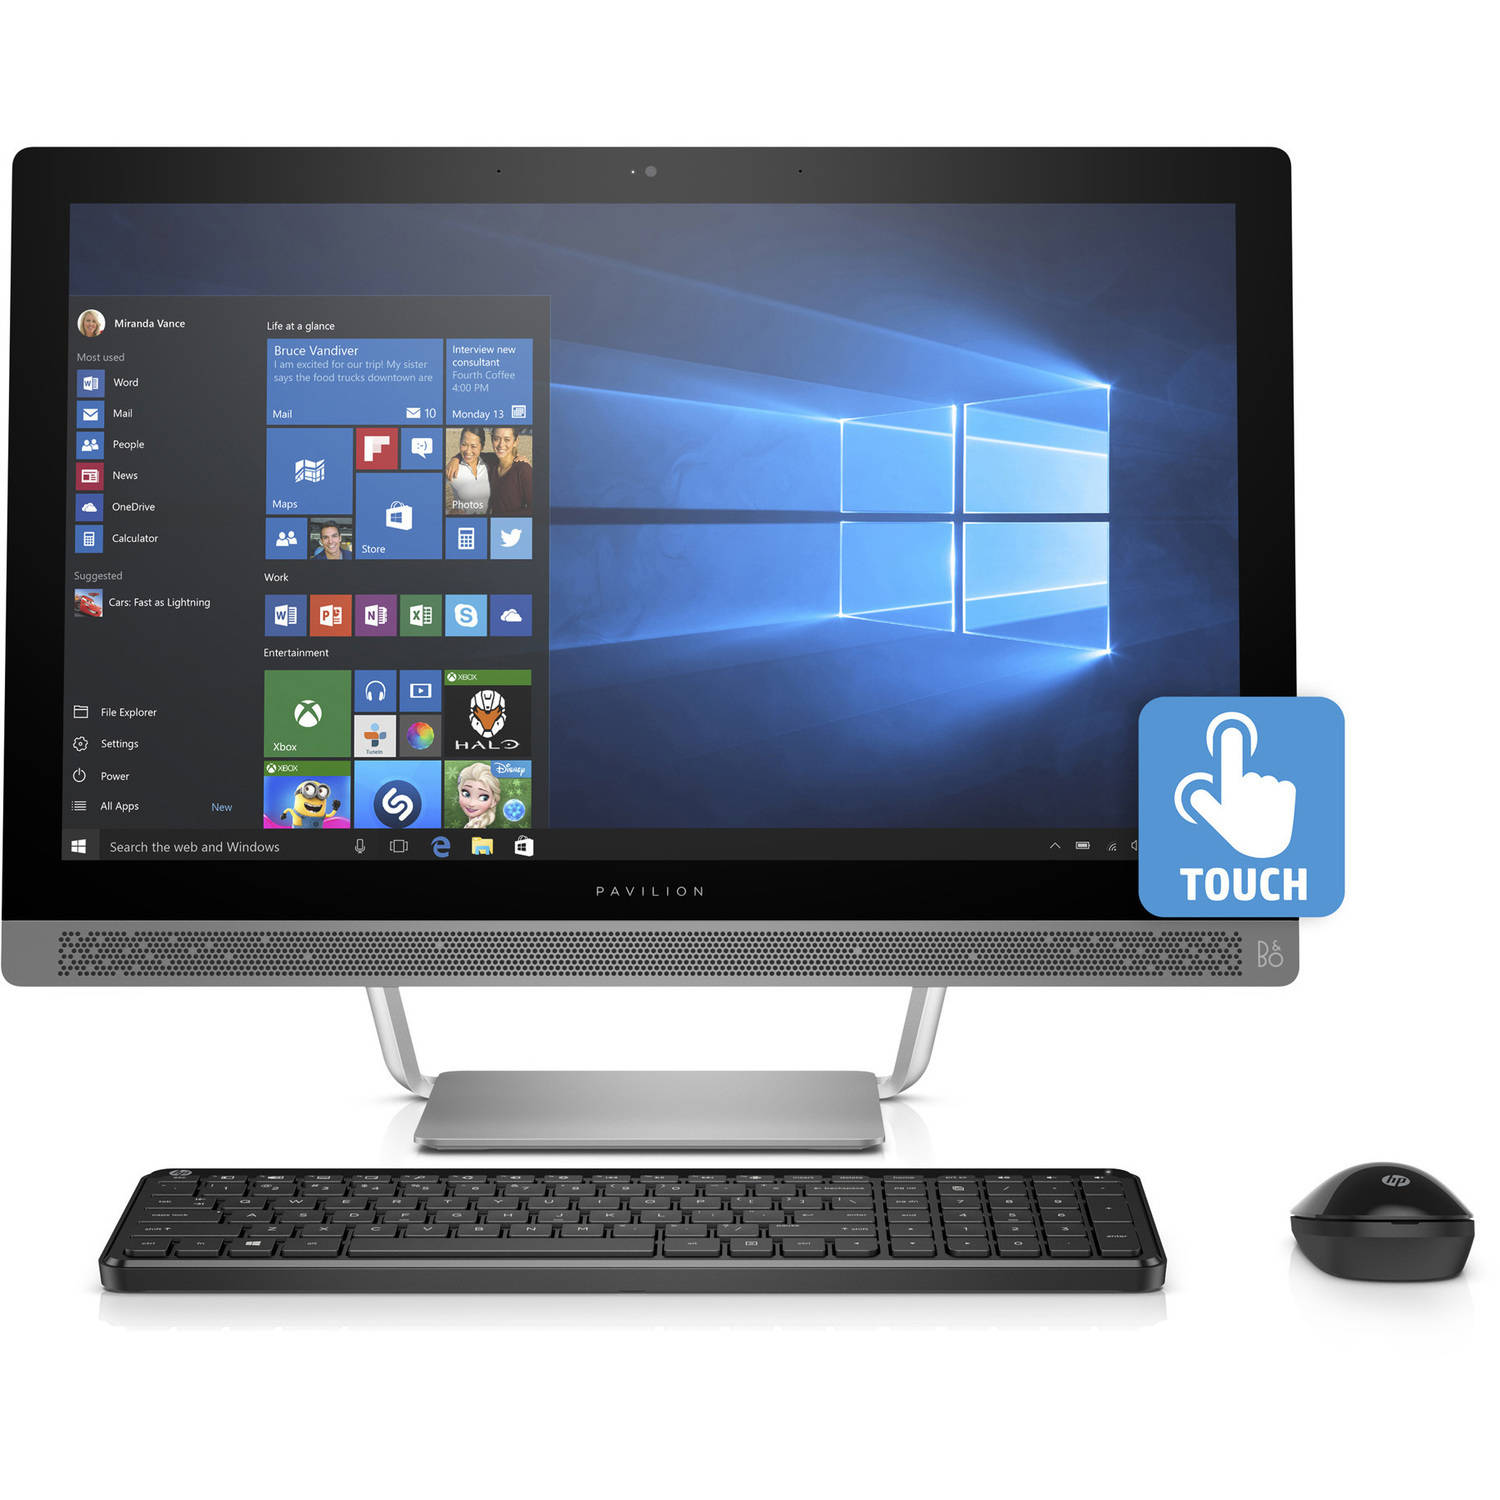 "HP Pavilion 24-b010 All-in-One Desktop PC with AMD A9-9410 Processor, 8GB Memory, 23.8"" touch screen, 1TB Hard Drive and Windows 10 Home"